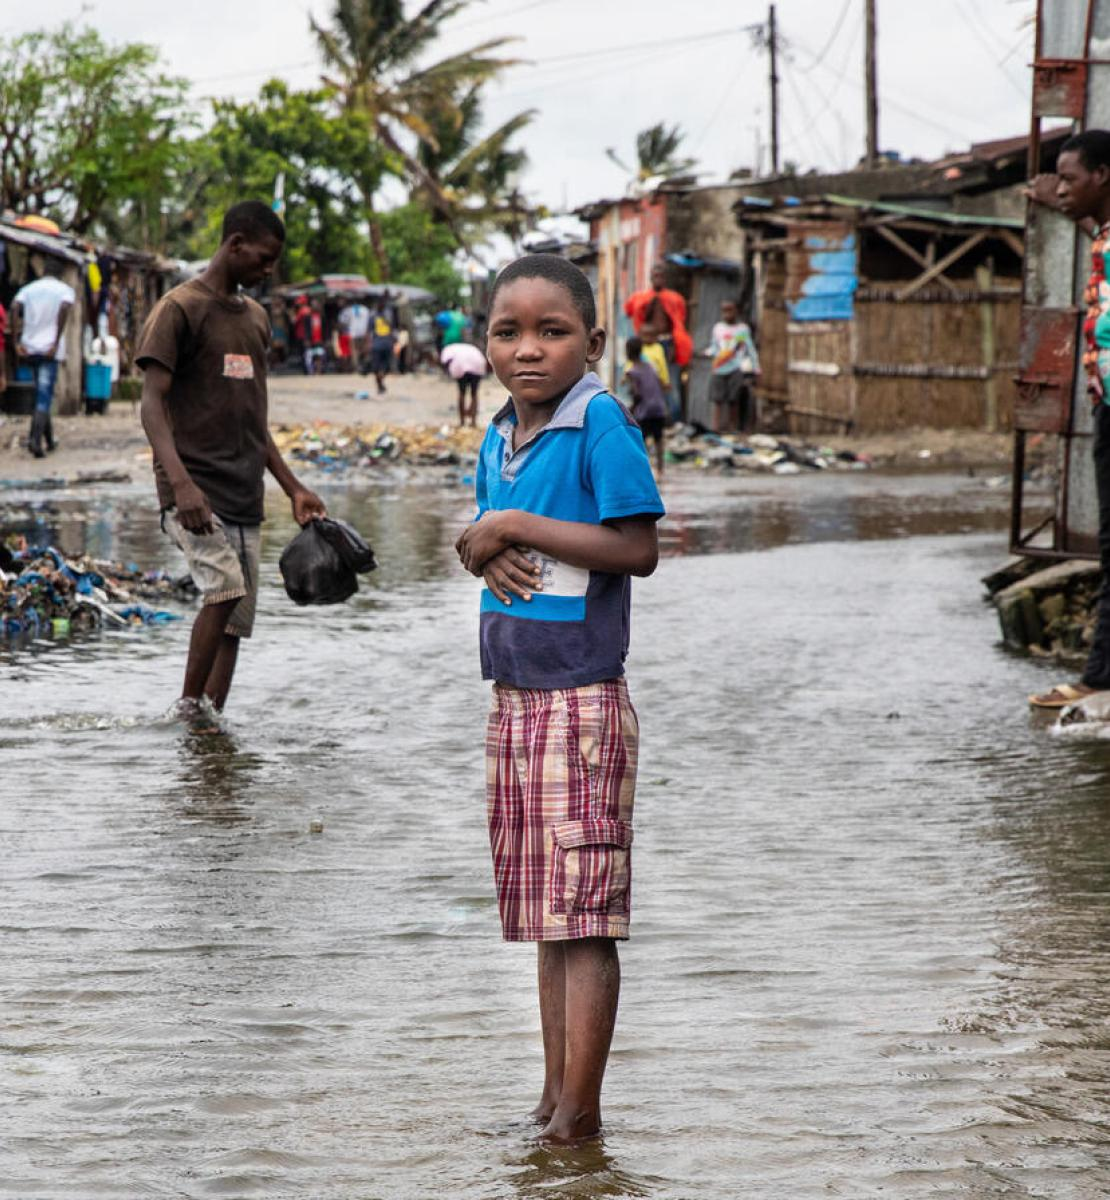 A child stands in rising water in the neighbourhood of Praia Nova in Beira, Mozambique.